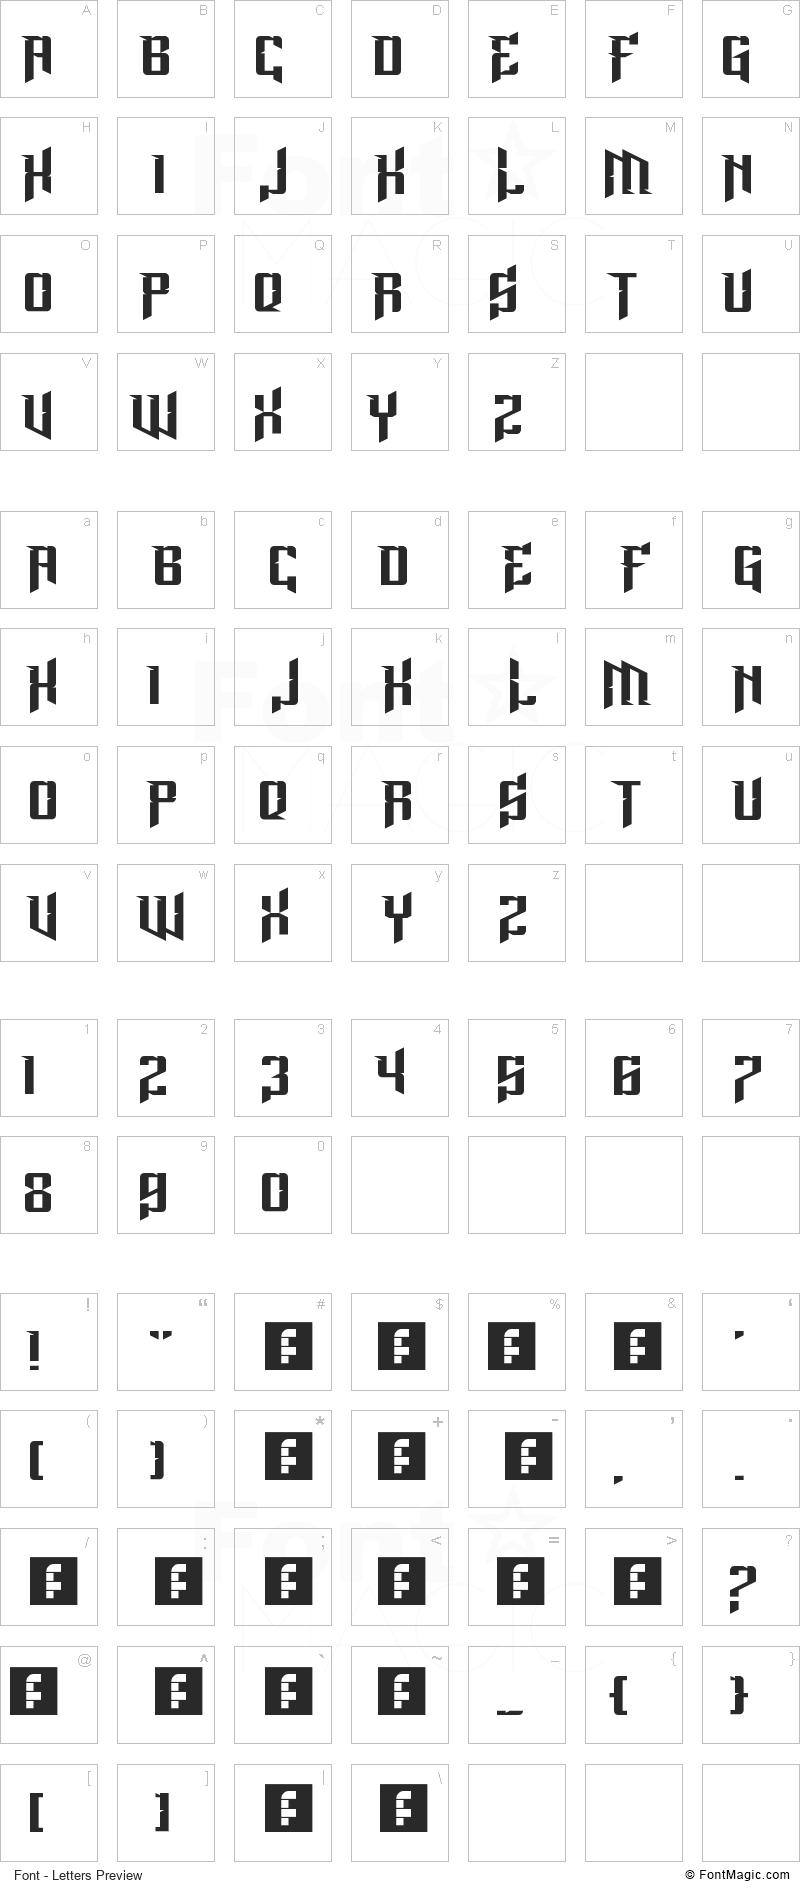 Lord Juusai Rises Font - All Latters Preview Chart